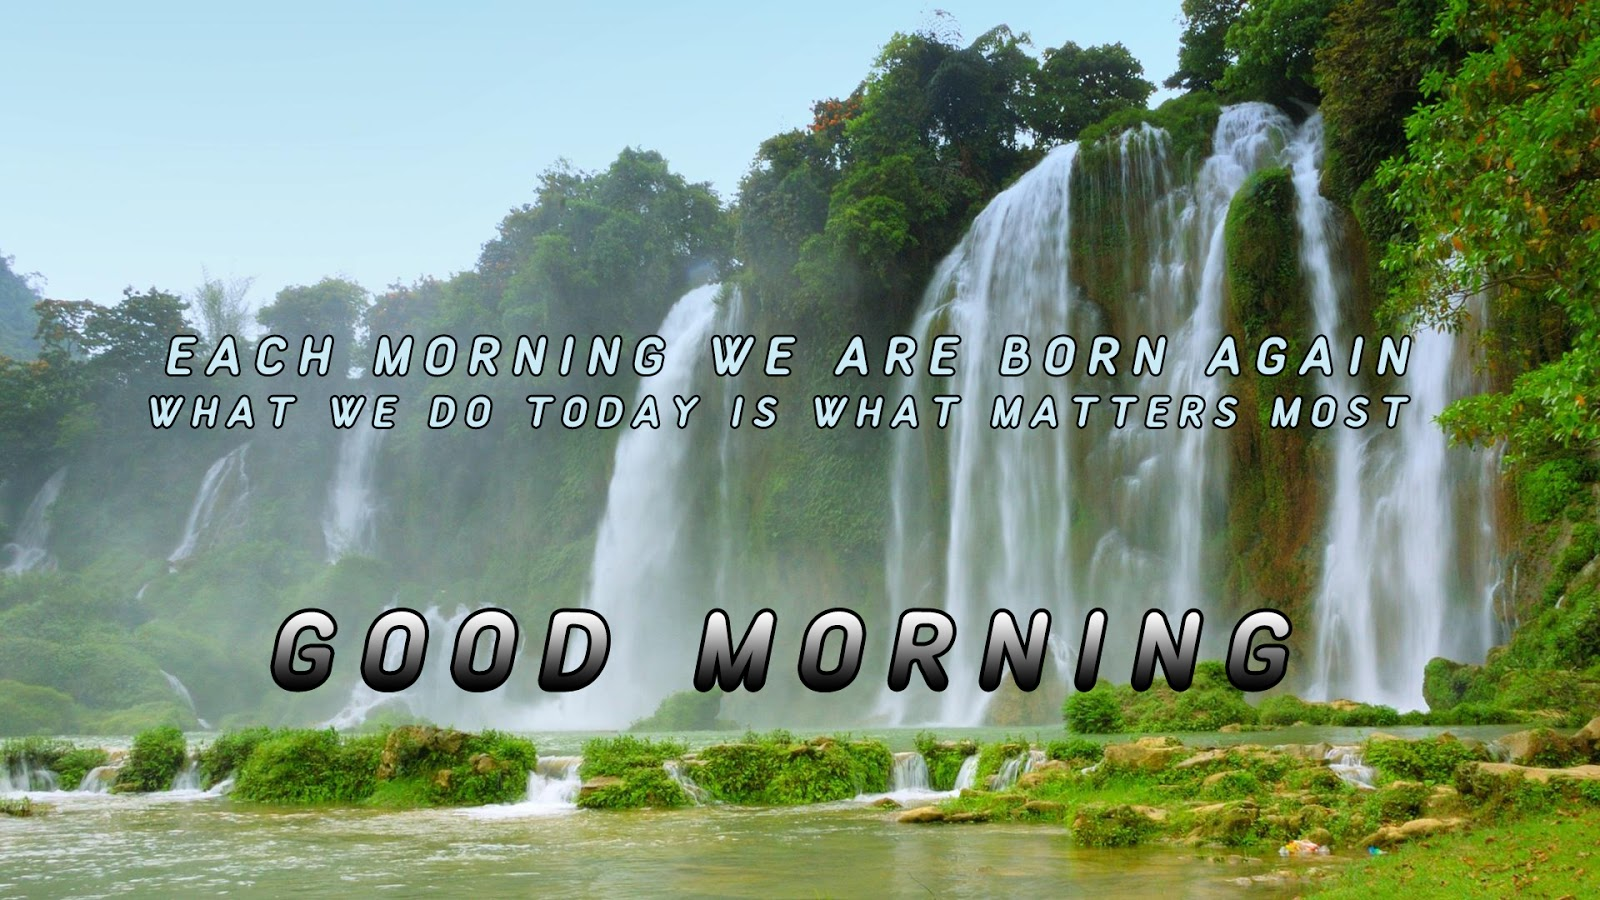 50 Amazing Good Morning Images With Nature Quotes